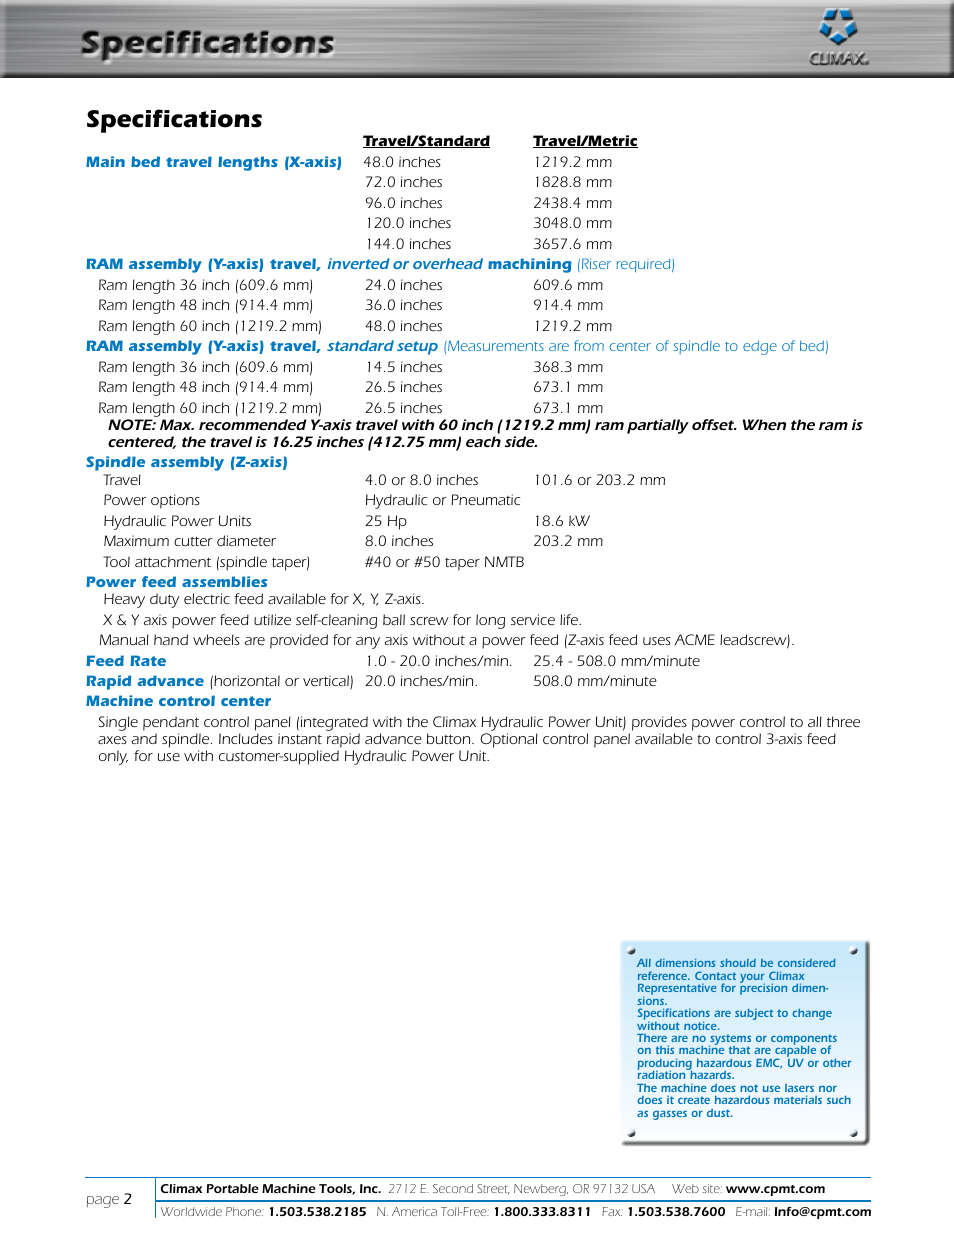 Specifications   Climax LM6000 OBS LINEAR/GANTRY MILL User Manual   Page 2  / 10